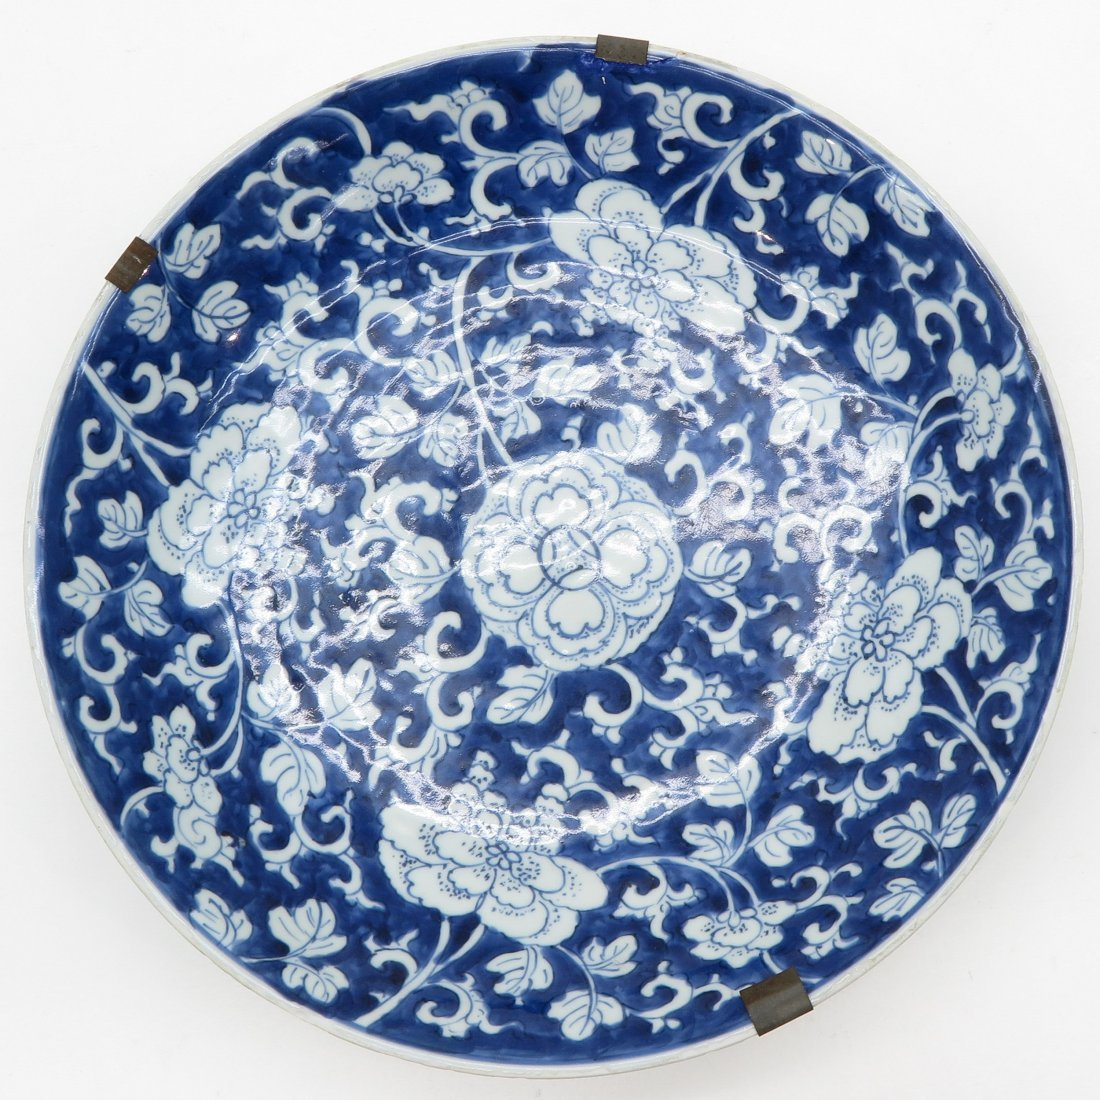 18th Century China Porcelain Plate